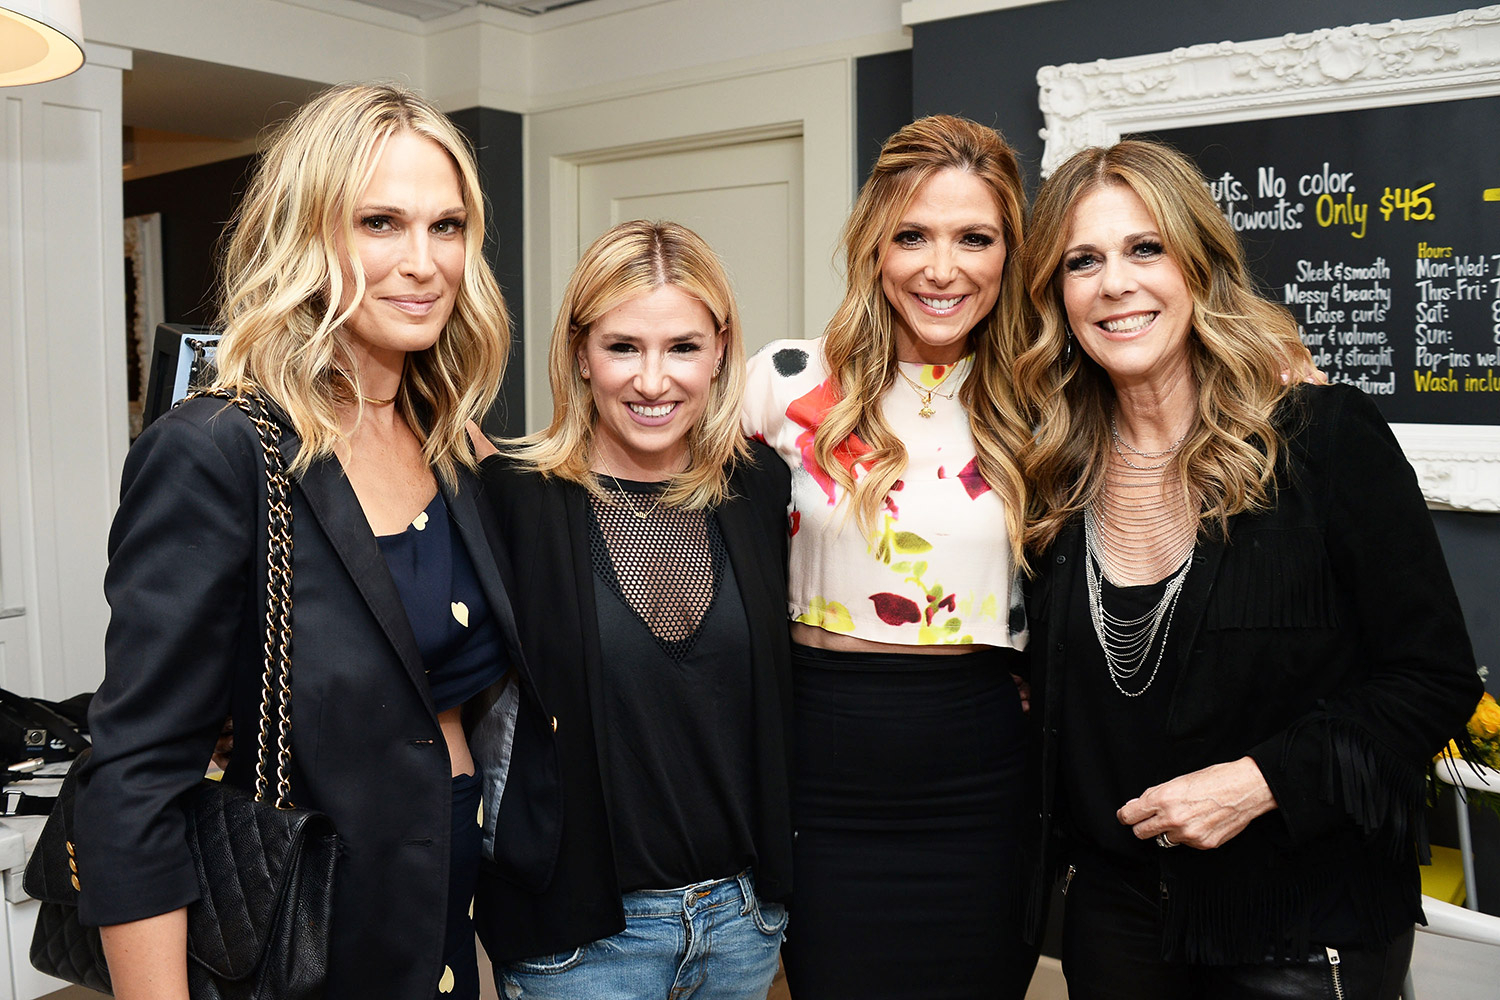 Molly Sims, Debbie Matenopoulos, Alli Webb, and Rita Wilson at Drybar in Beverly Hills